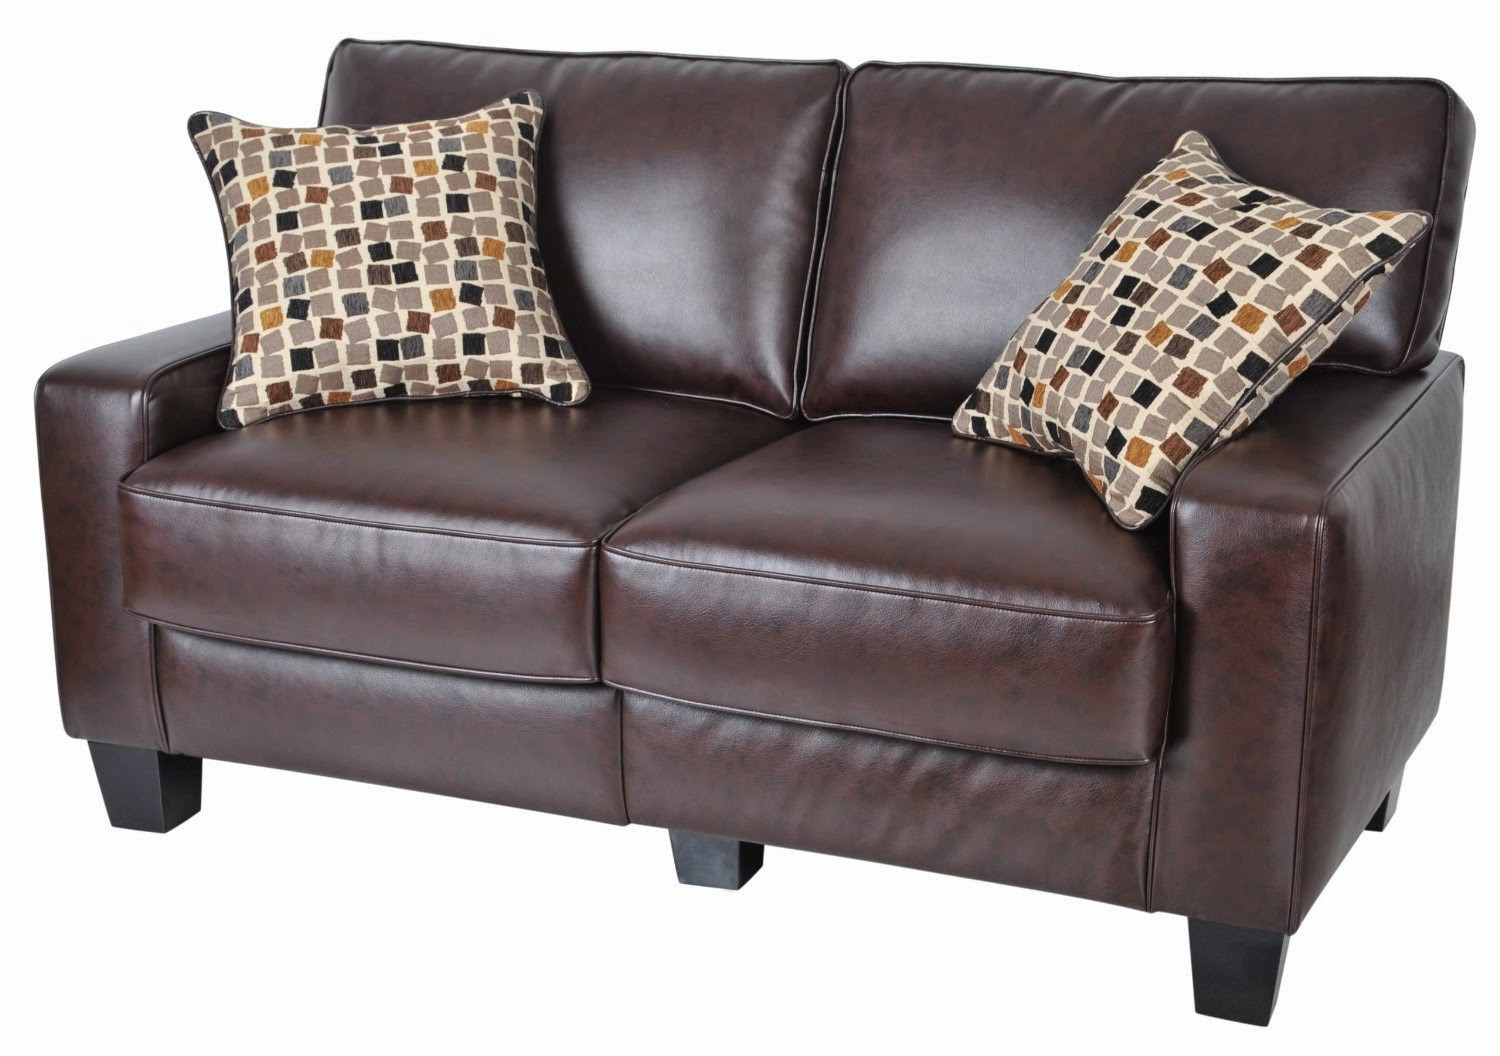 rome faux leather convertible sofa bed brown waterproof cover incontinence couch